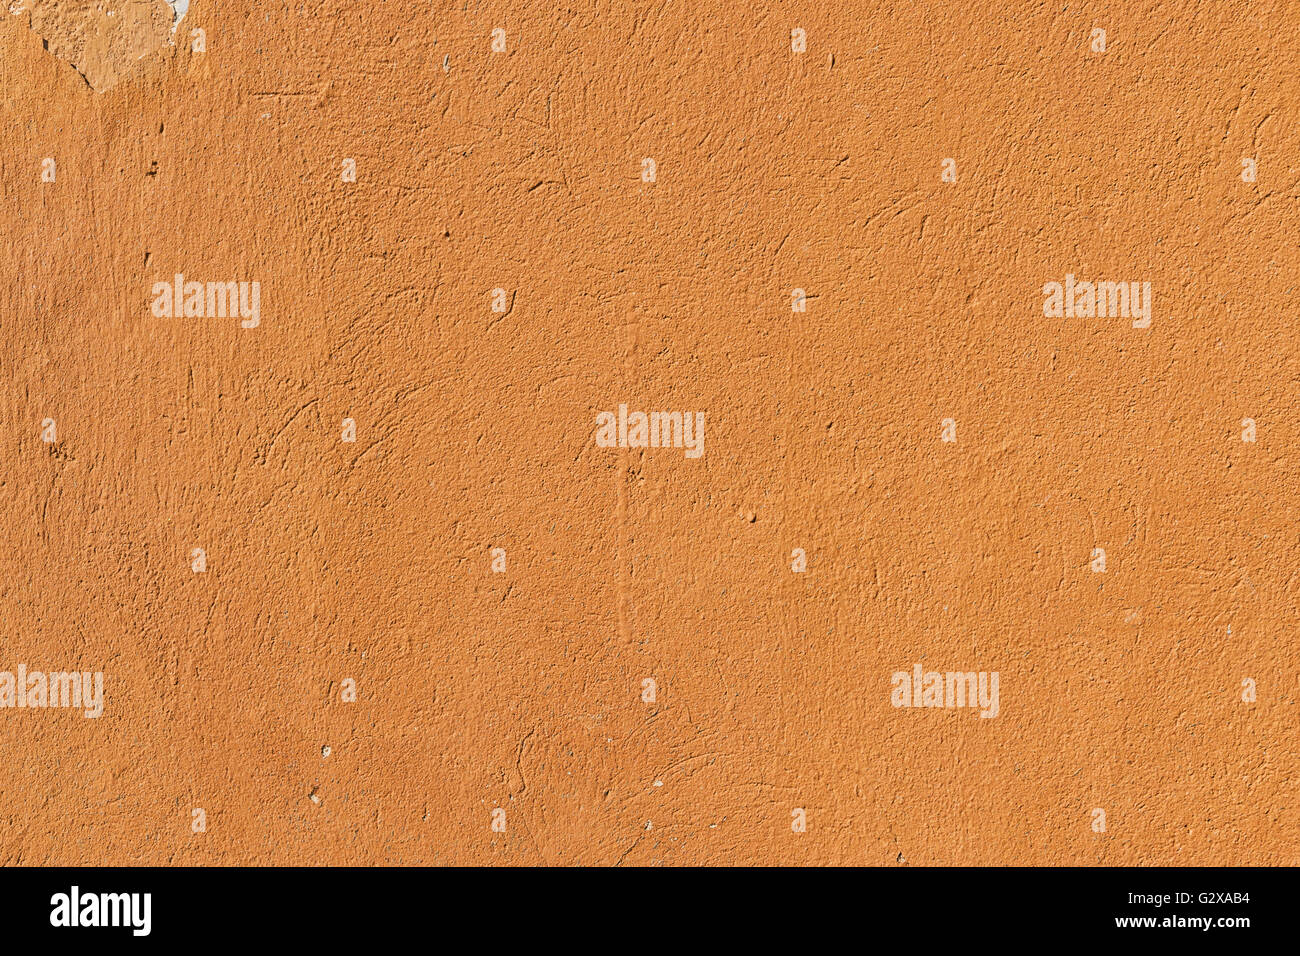 Details of a old concrete wall in orange color - Stock Image